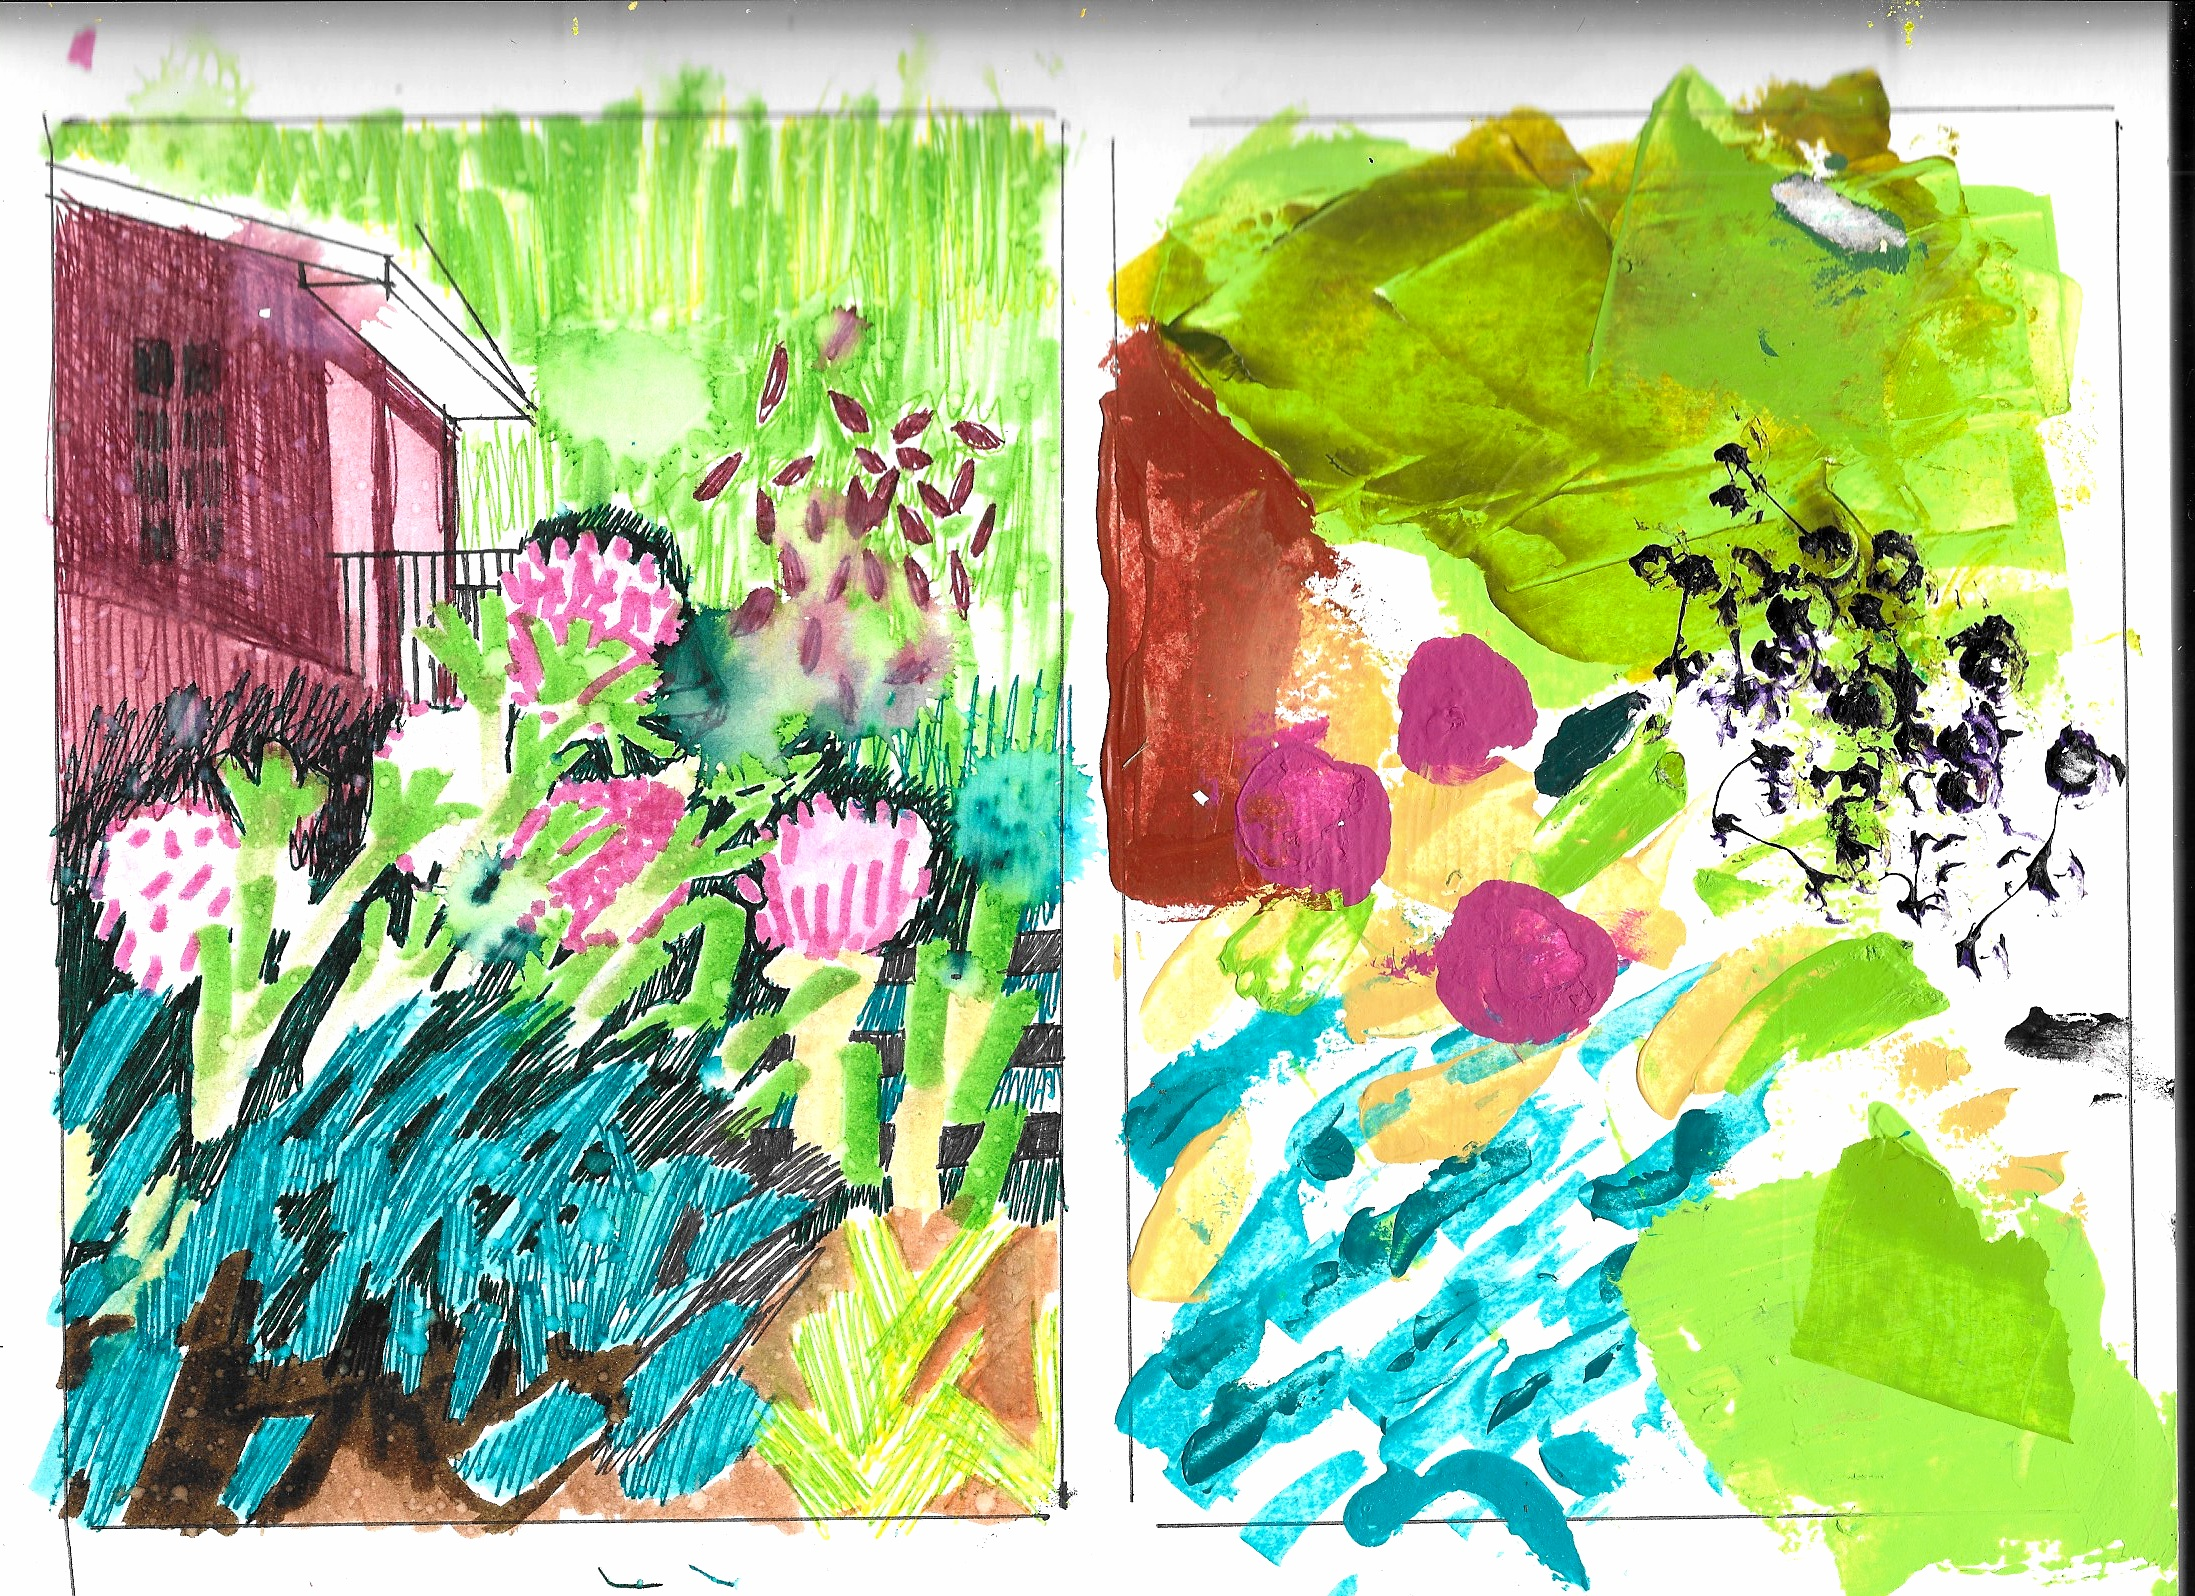 Thumbnail sketches for a painting of my parent's backyard.